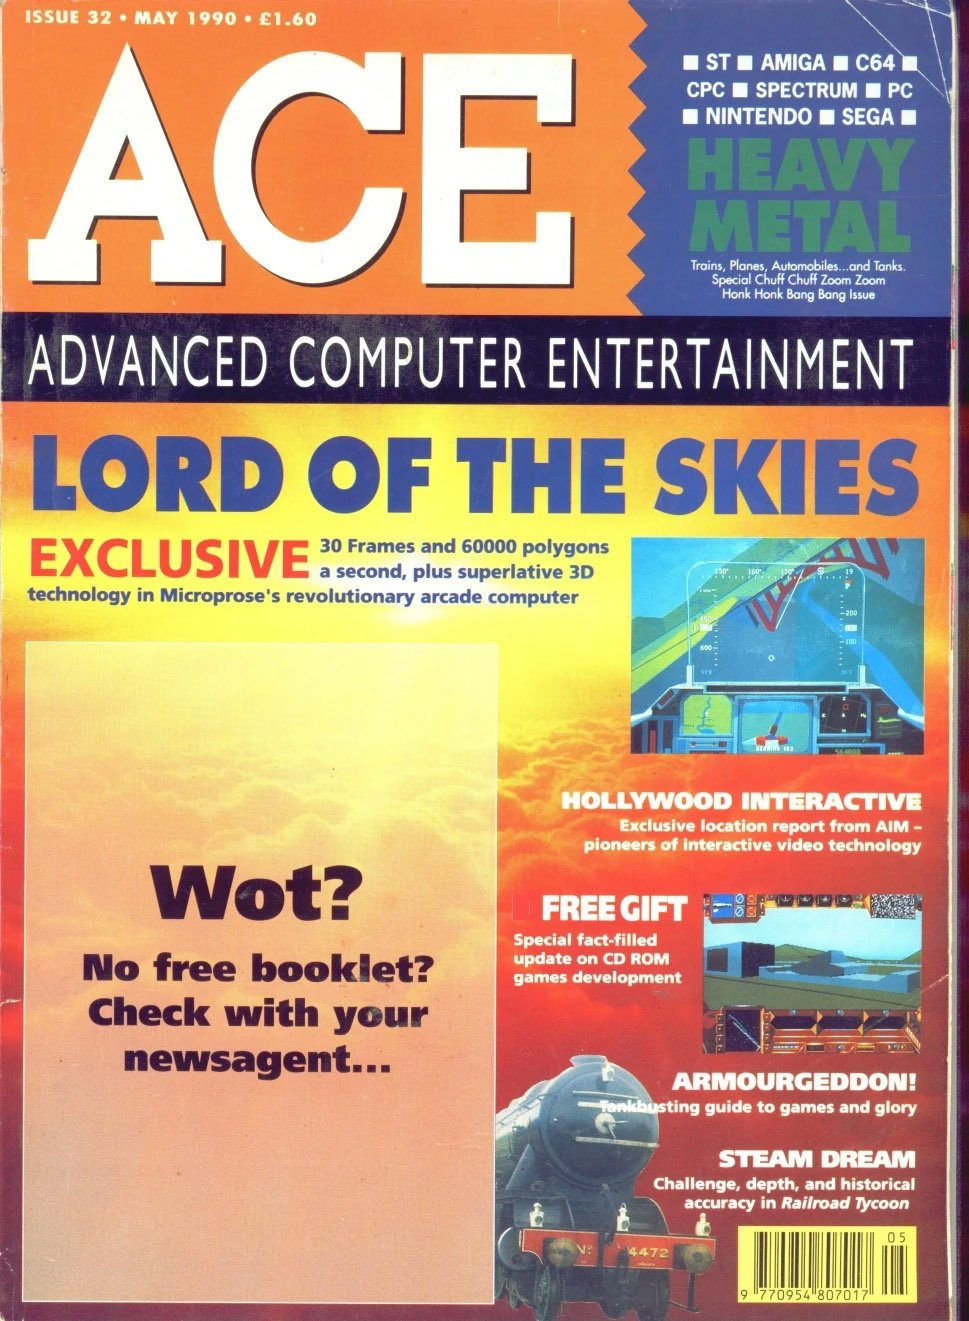 ACE 32 (May 1990)